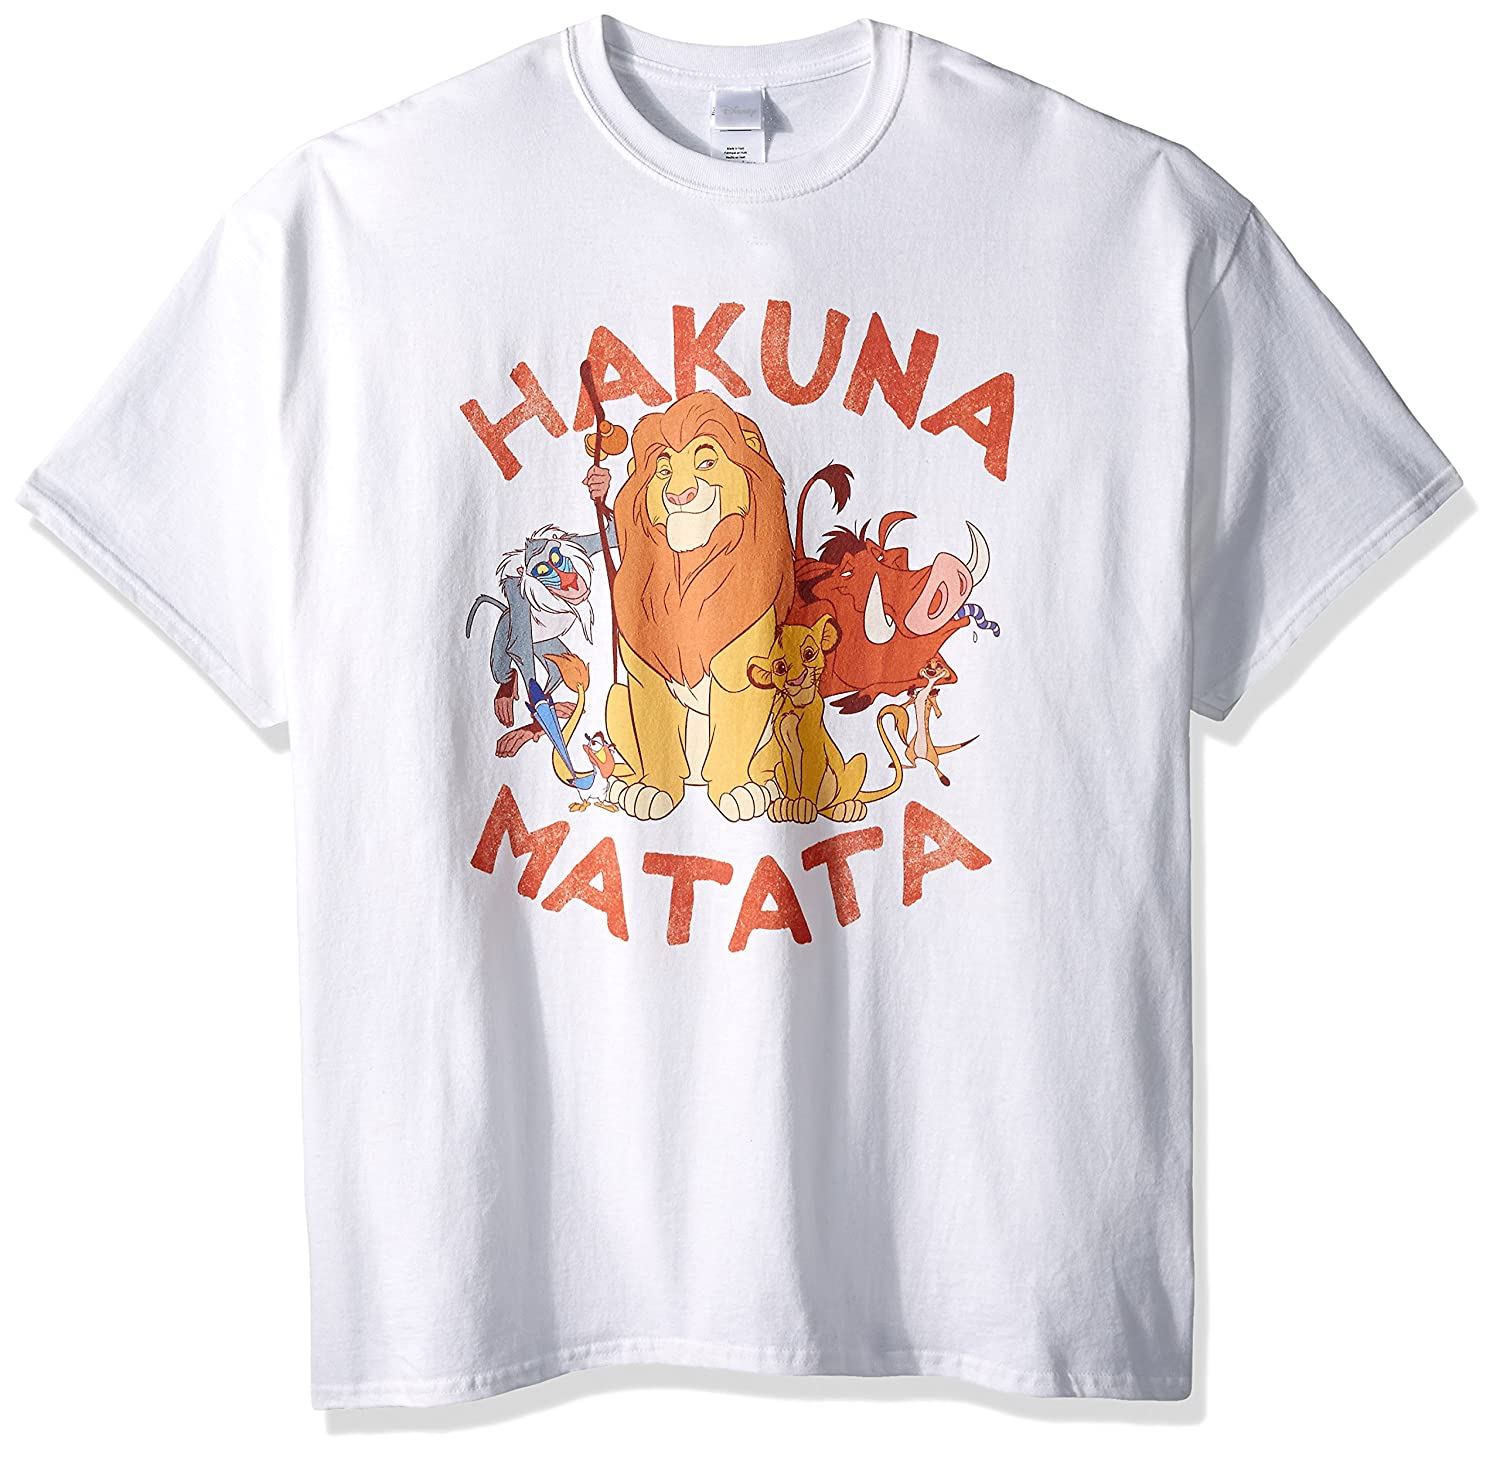 7f40b6d84c22 Amazon.com: Disney Men's Hakuna Matata Group T-Shirt: Clothing